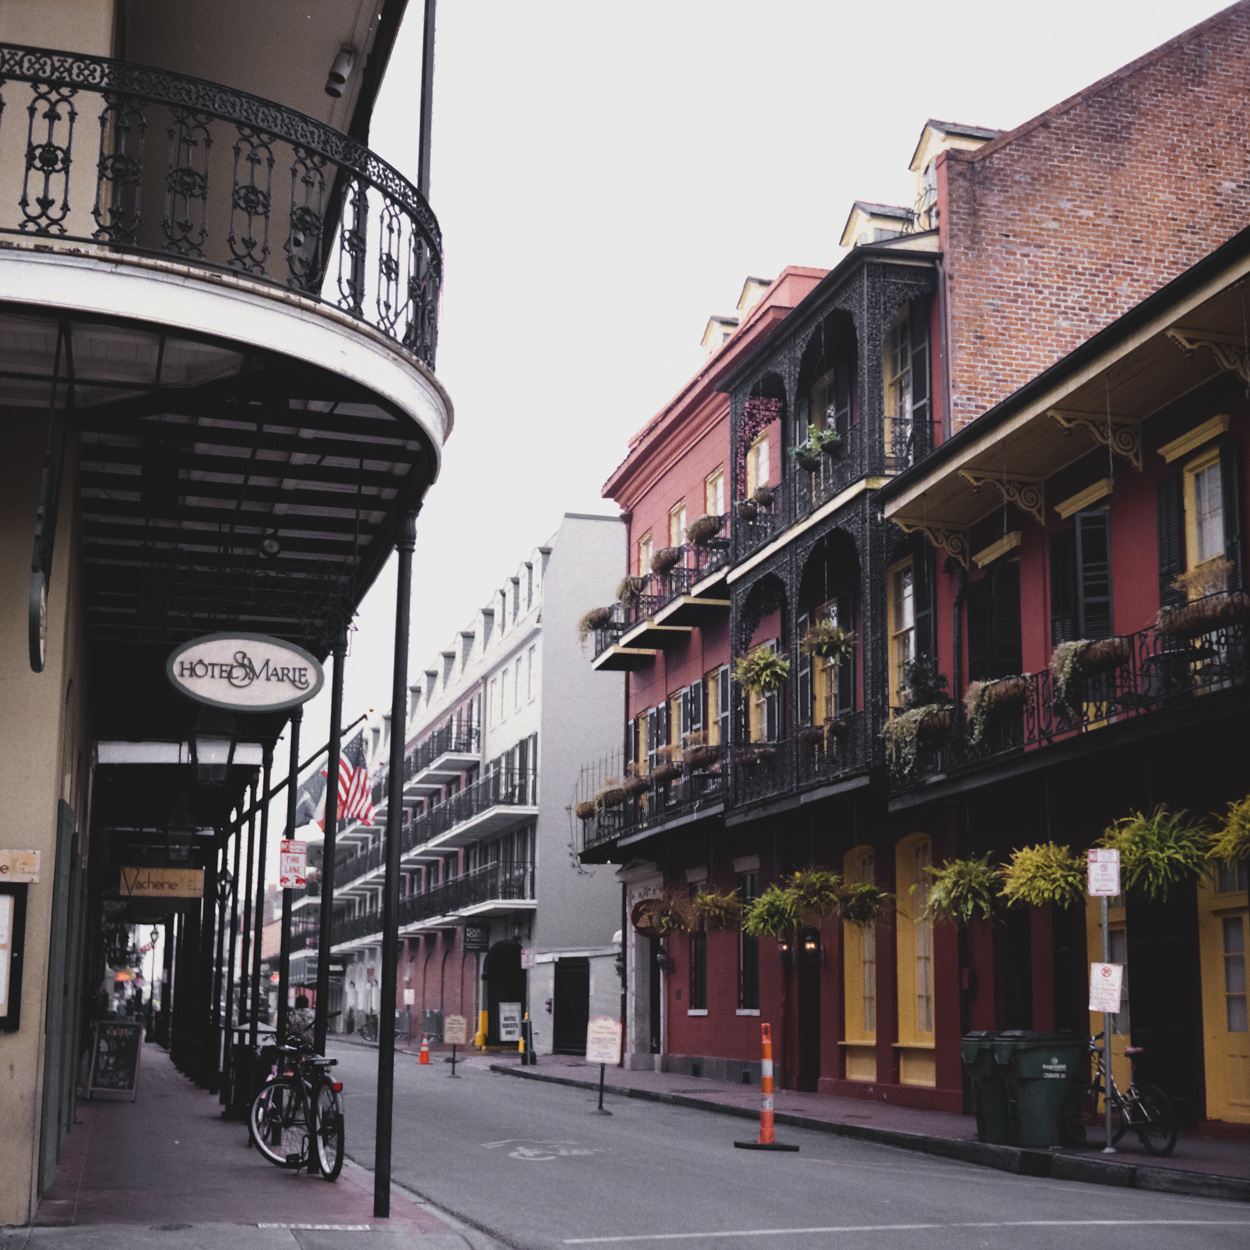 A city scape of the French Quarter, the architecture and colours are beautiful